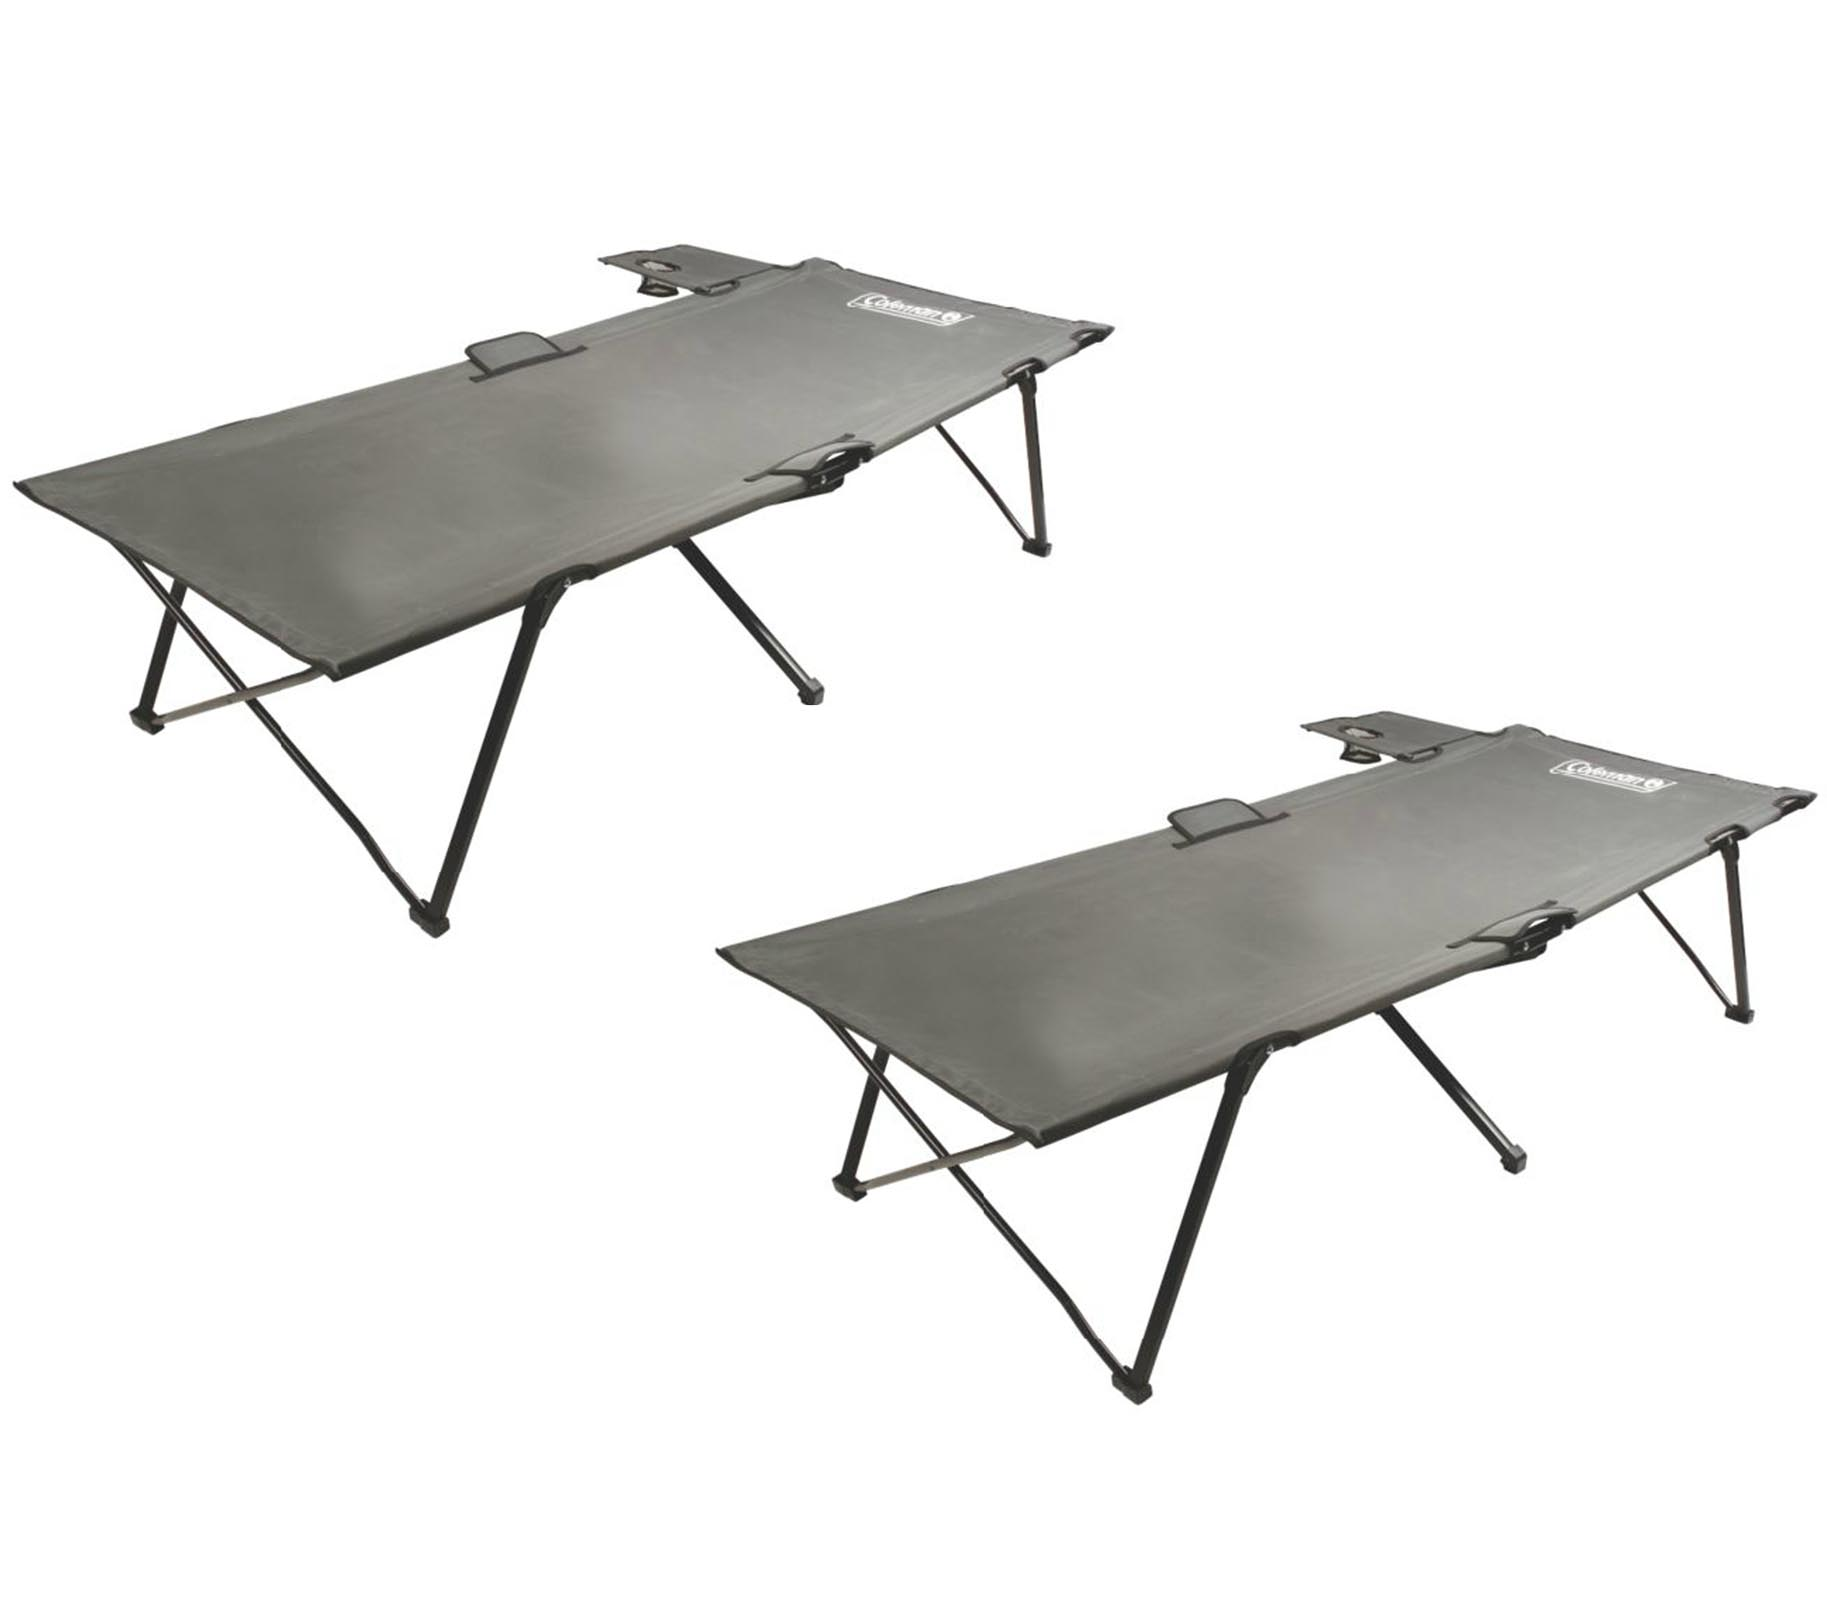 Click here to buy (2) COLEMAN Portable Camping Twin PackAway Cots w  Removable Table & Cup Holder by COLEMAN.